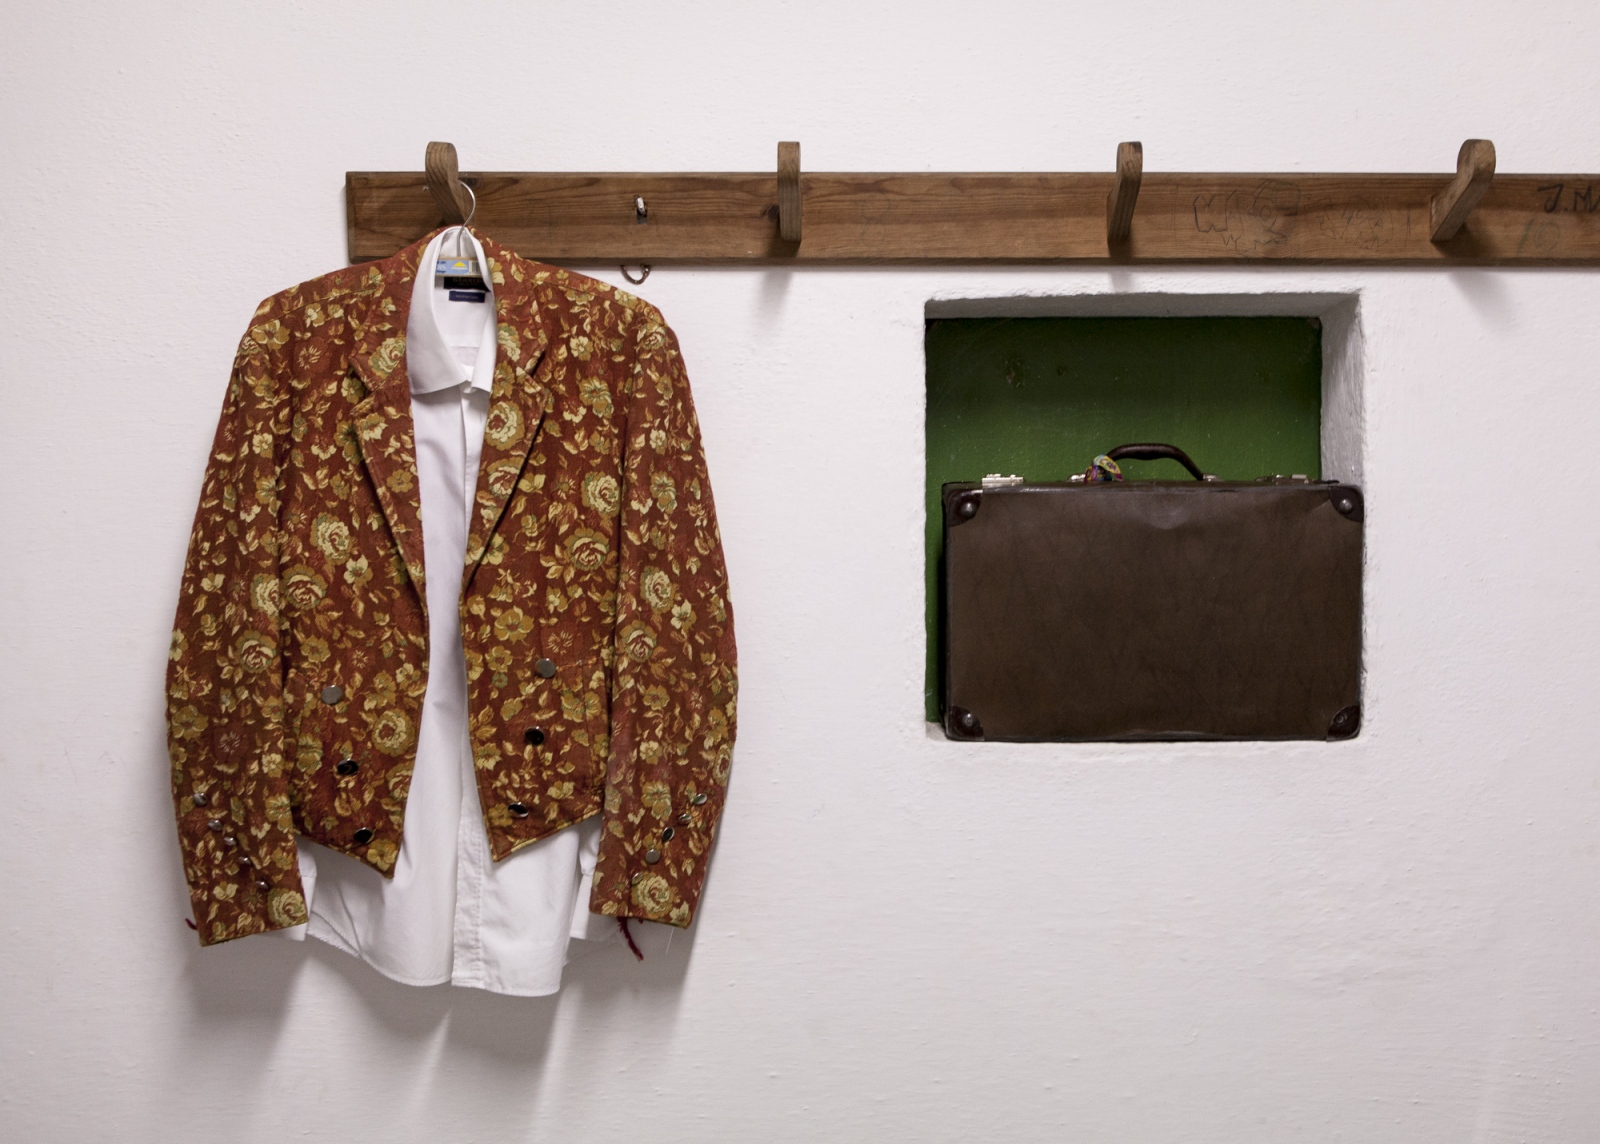 The 'jaqueta' or  forcado's jacket in the dressing room before the bullfight. The jacket distinguishes each group from a another because of the different fabrics and patterns. It is also extremely important for the forcados since it passes from generation to generation.